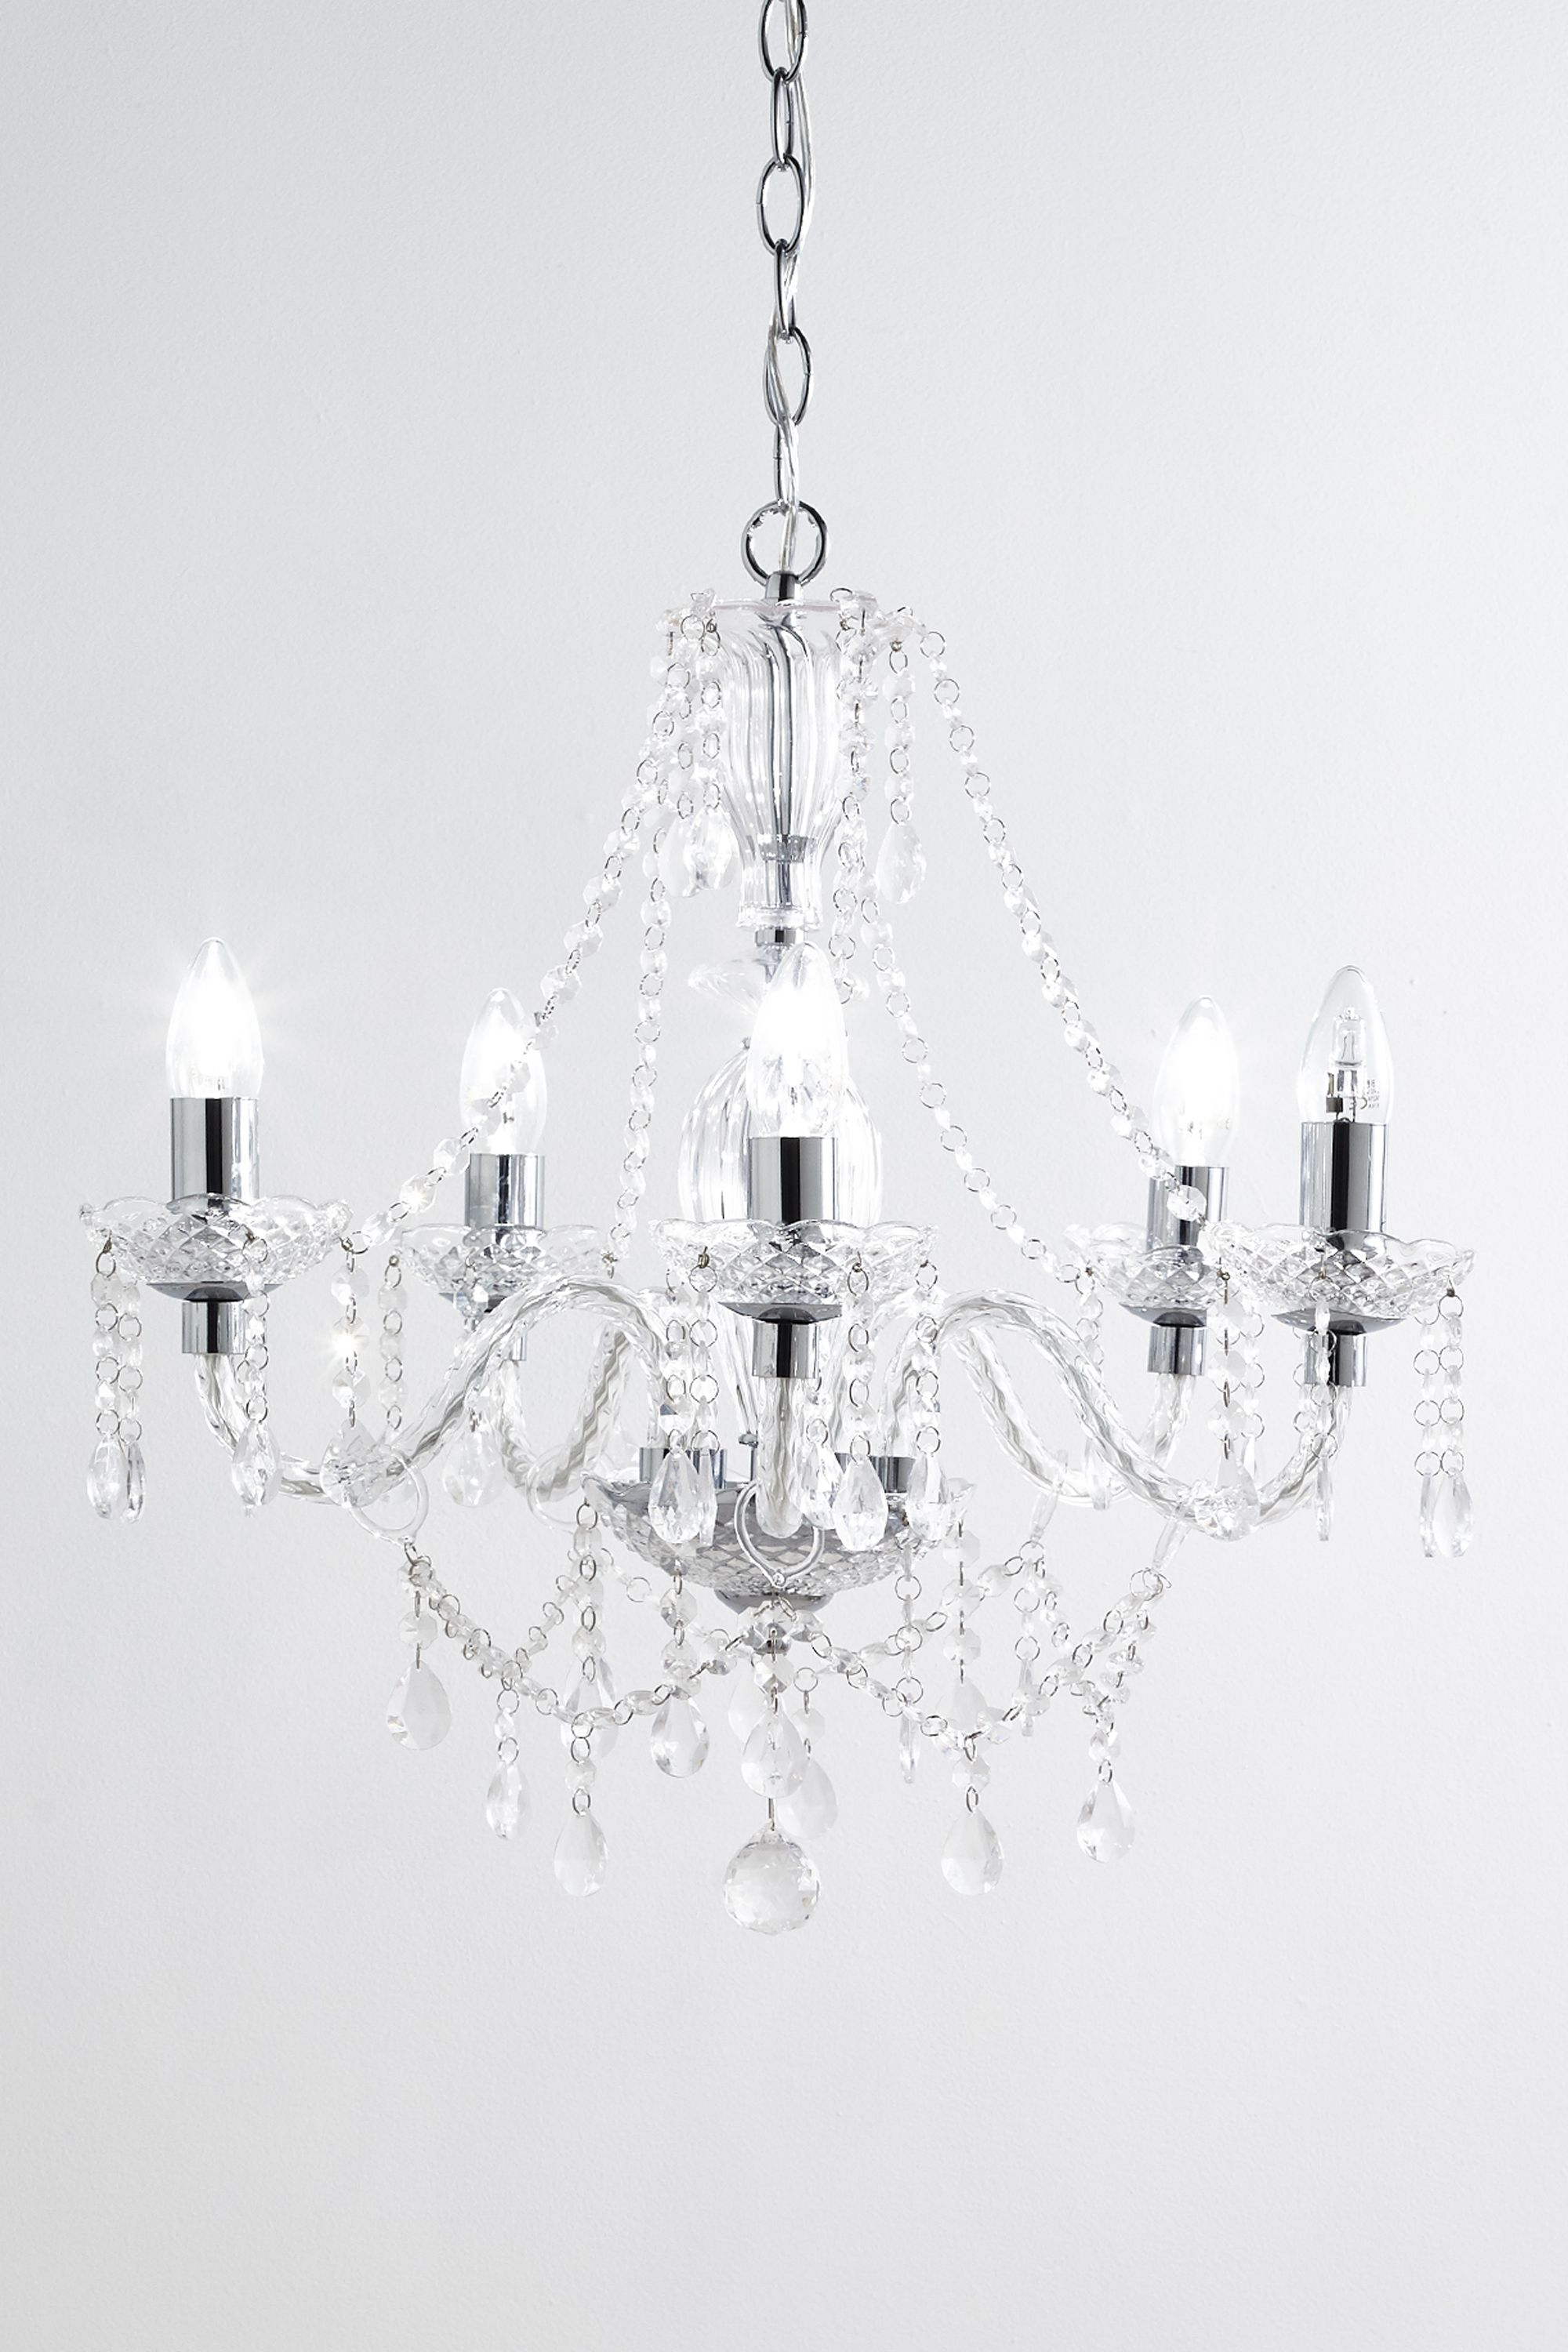 kitchen lamp product sale chandelier ceiling ac air luxury villa quality shipping superior vintage crystal led decor chandeliers for hot contemporary